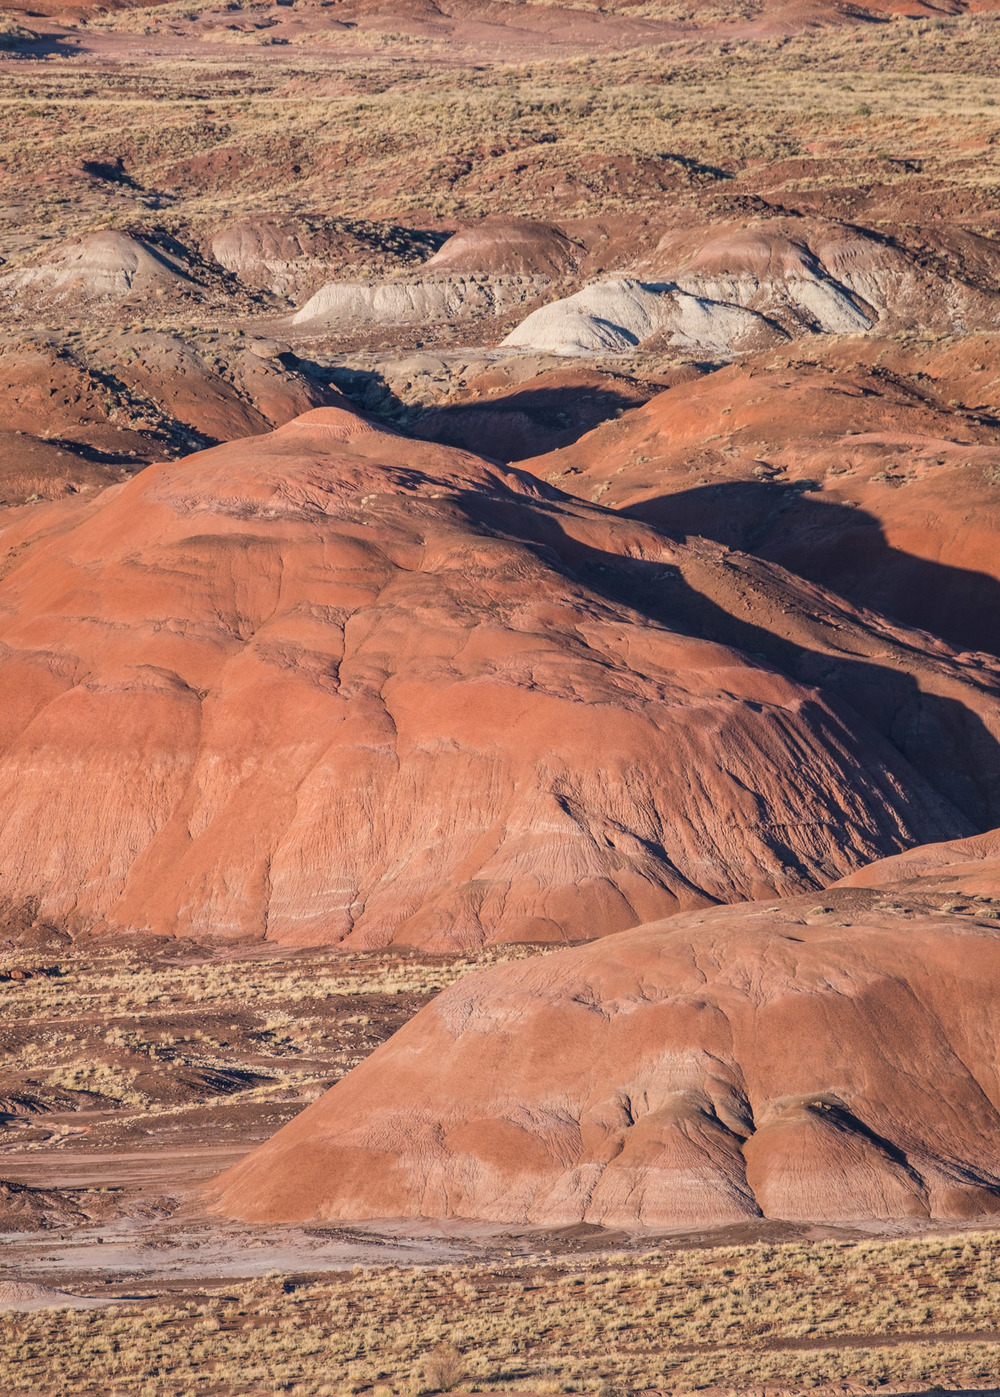 A telephoto view of the Painted Desert.